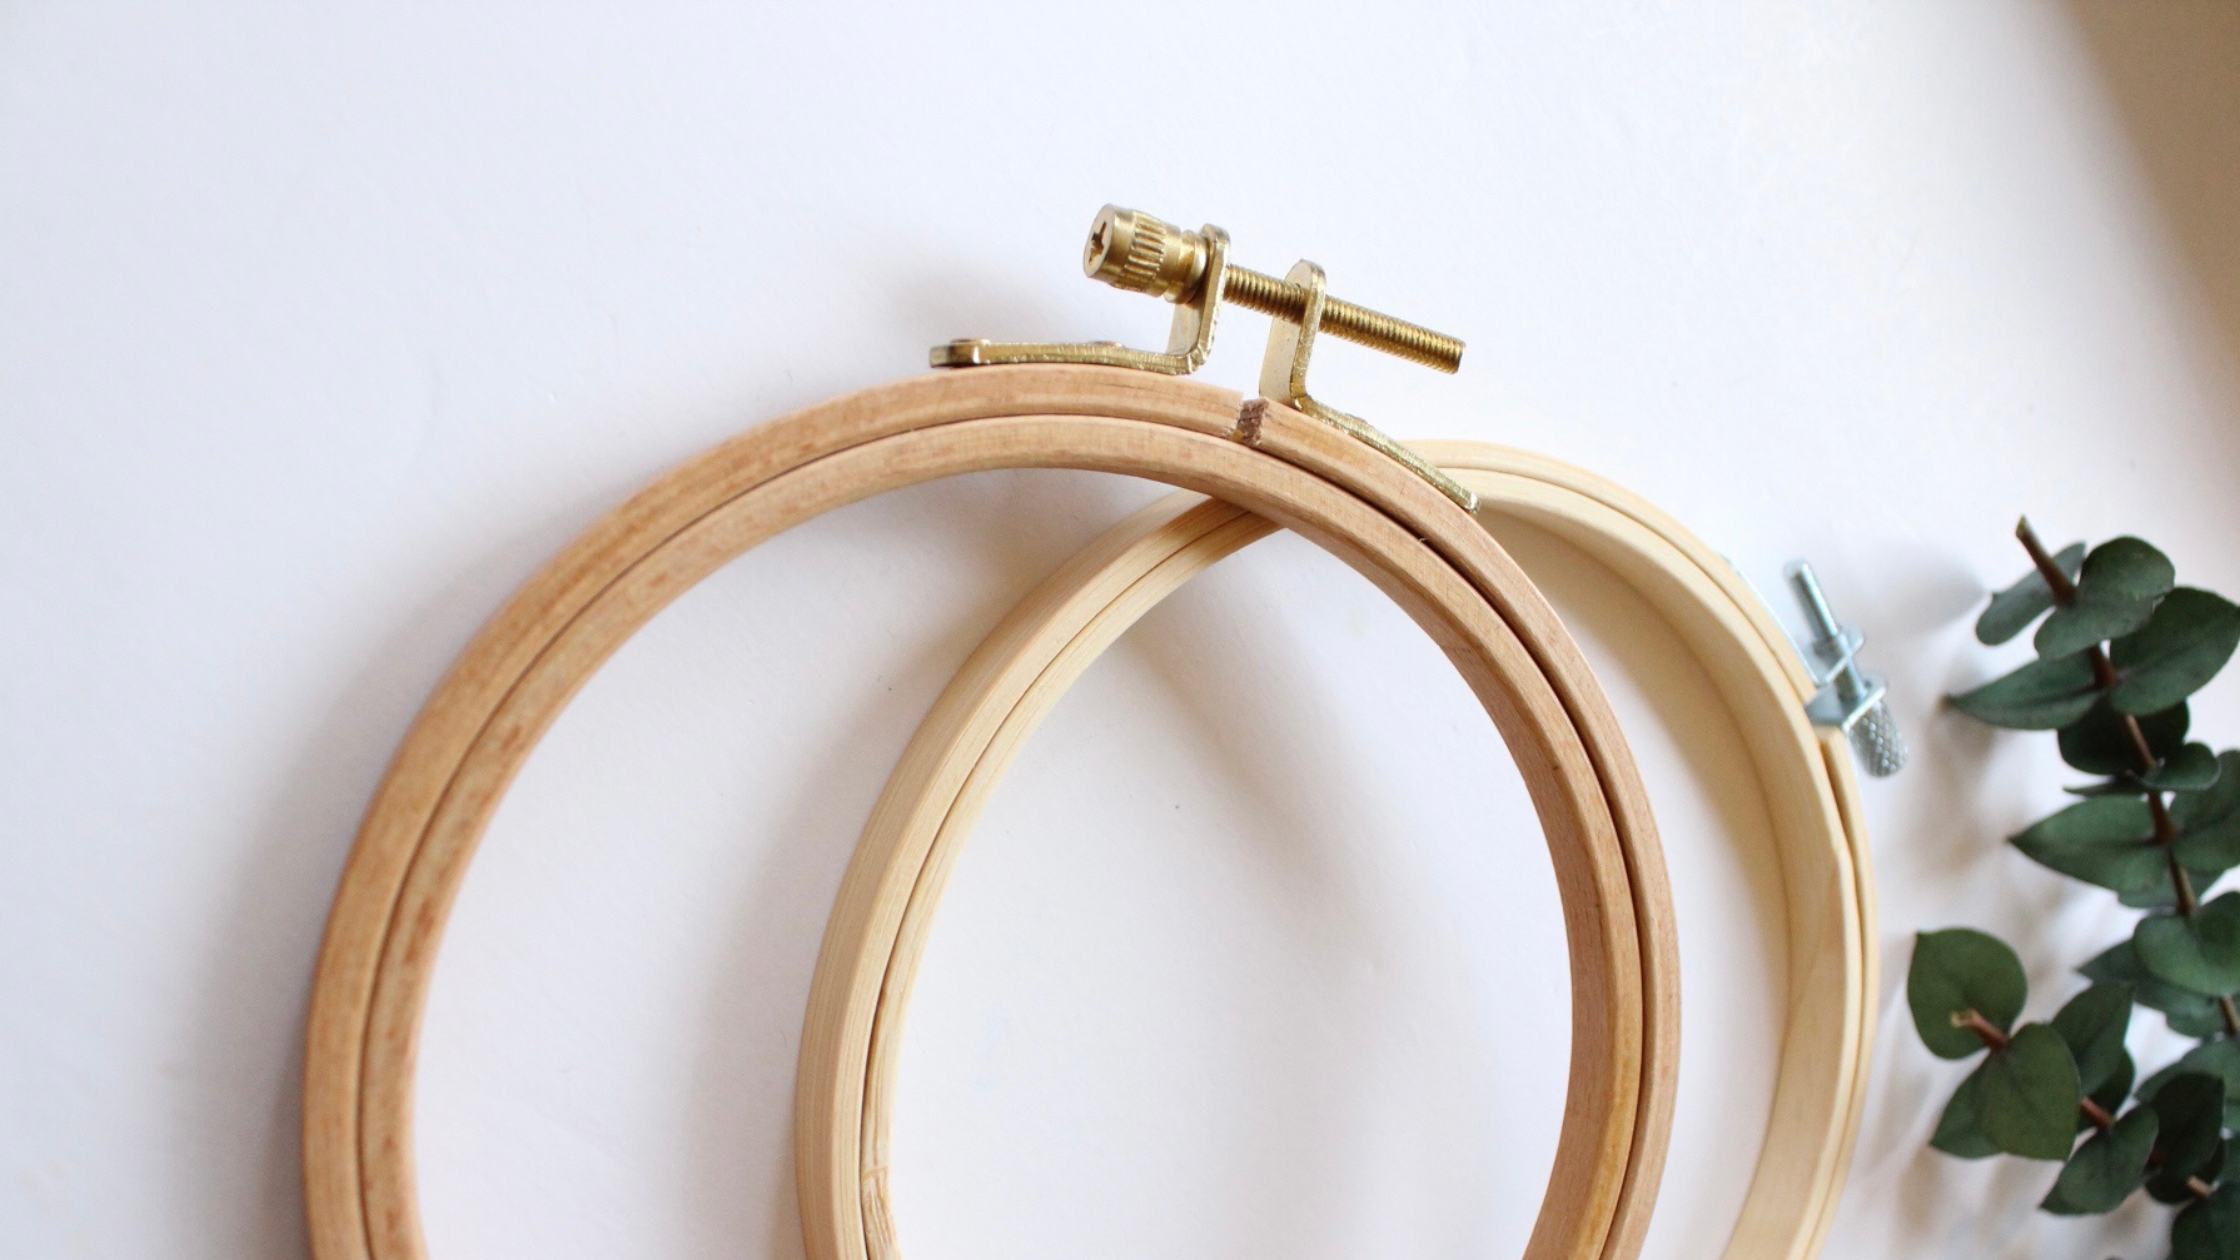 Guide To Embroidery Hoops and How to Use Them